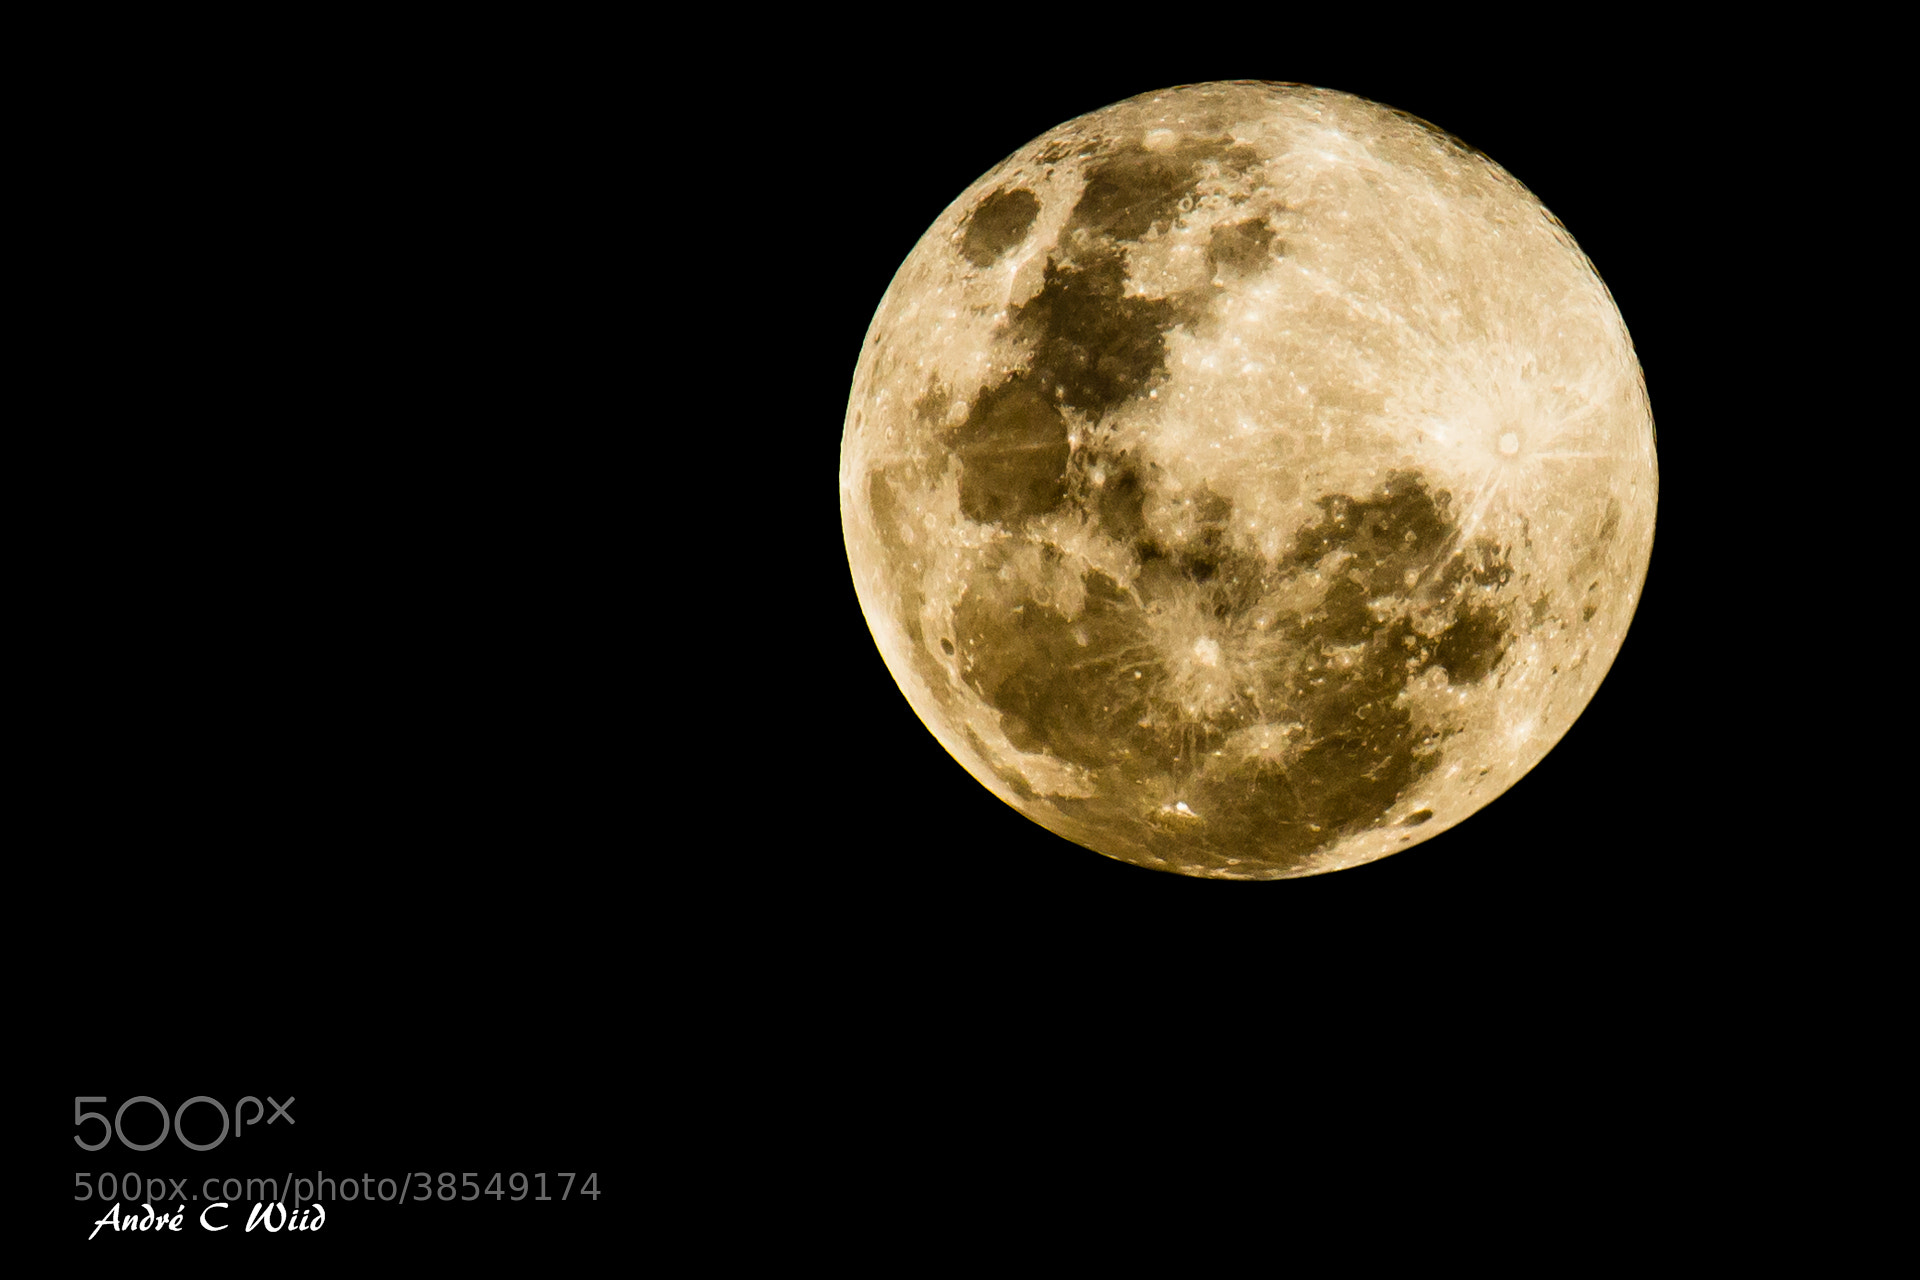 Photograph Moon by Andre Wiid on 500px